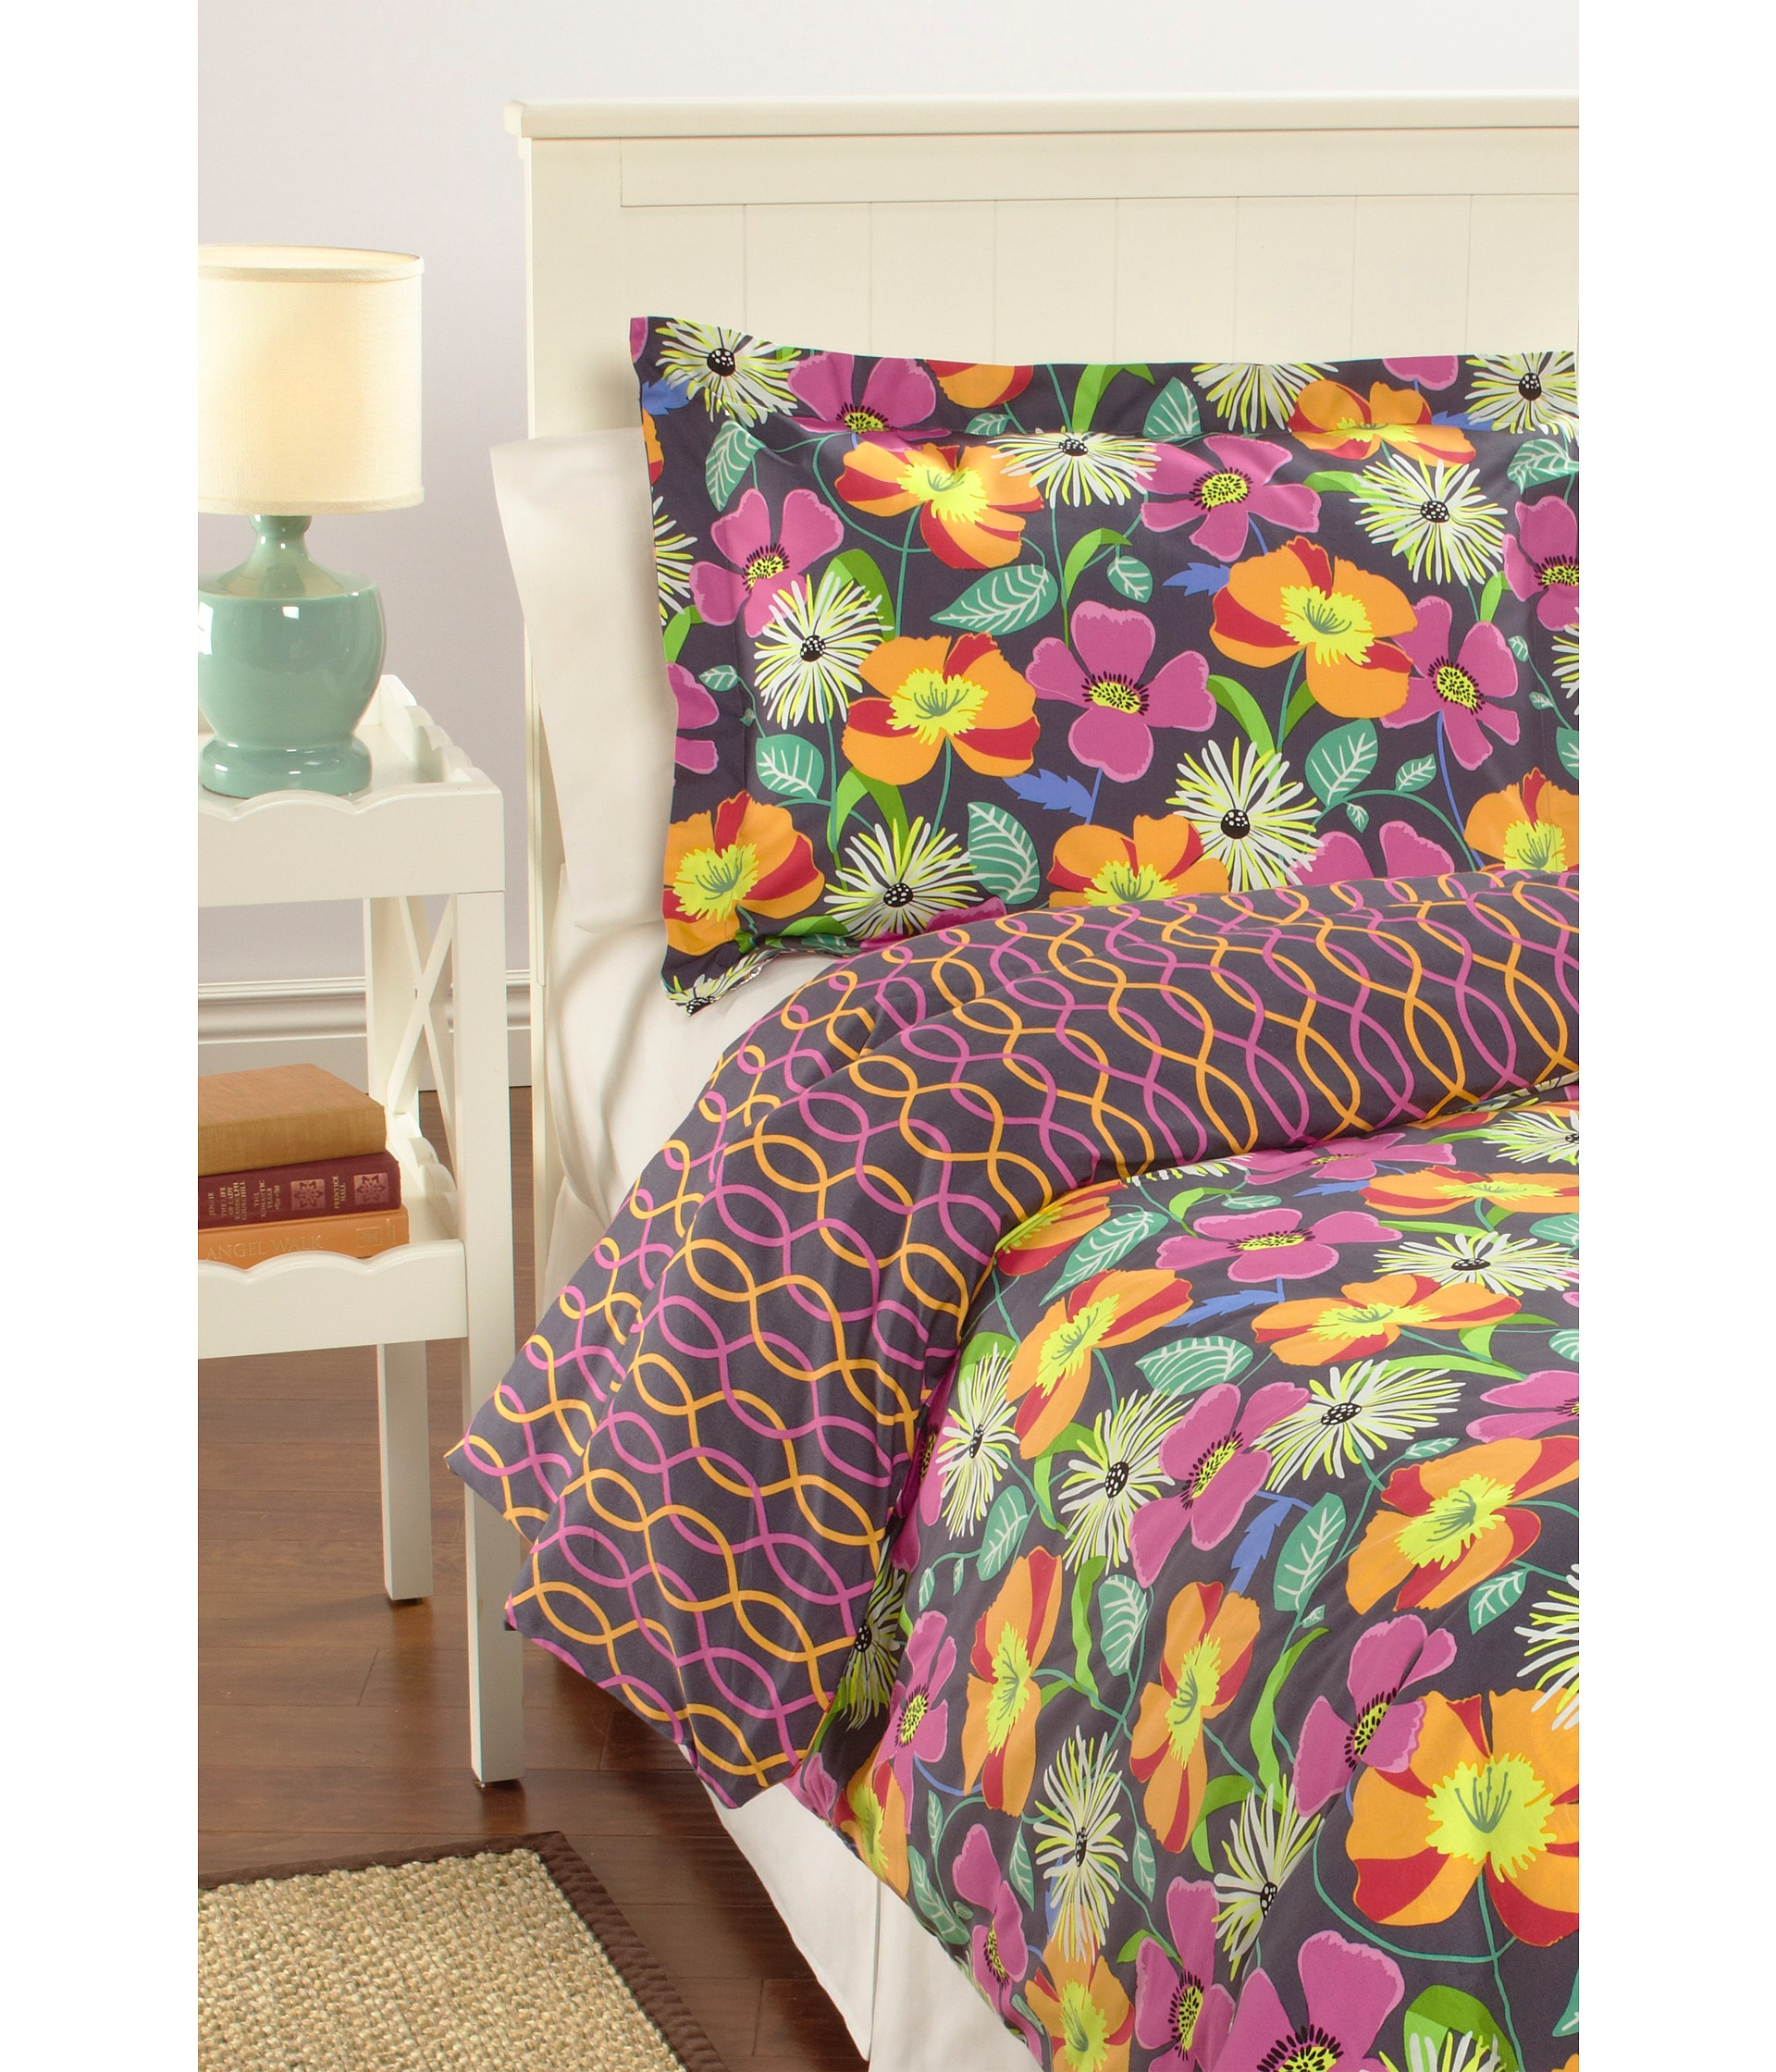 Vera Bradley Reversible Comforter Set Full Queen Shipped